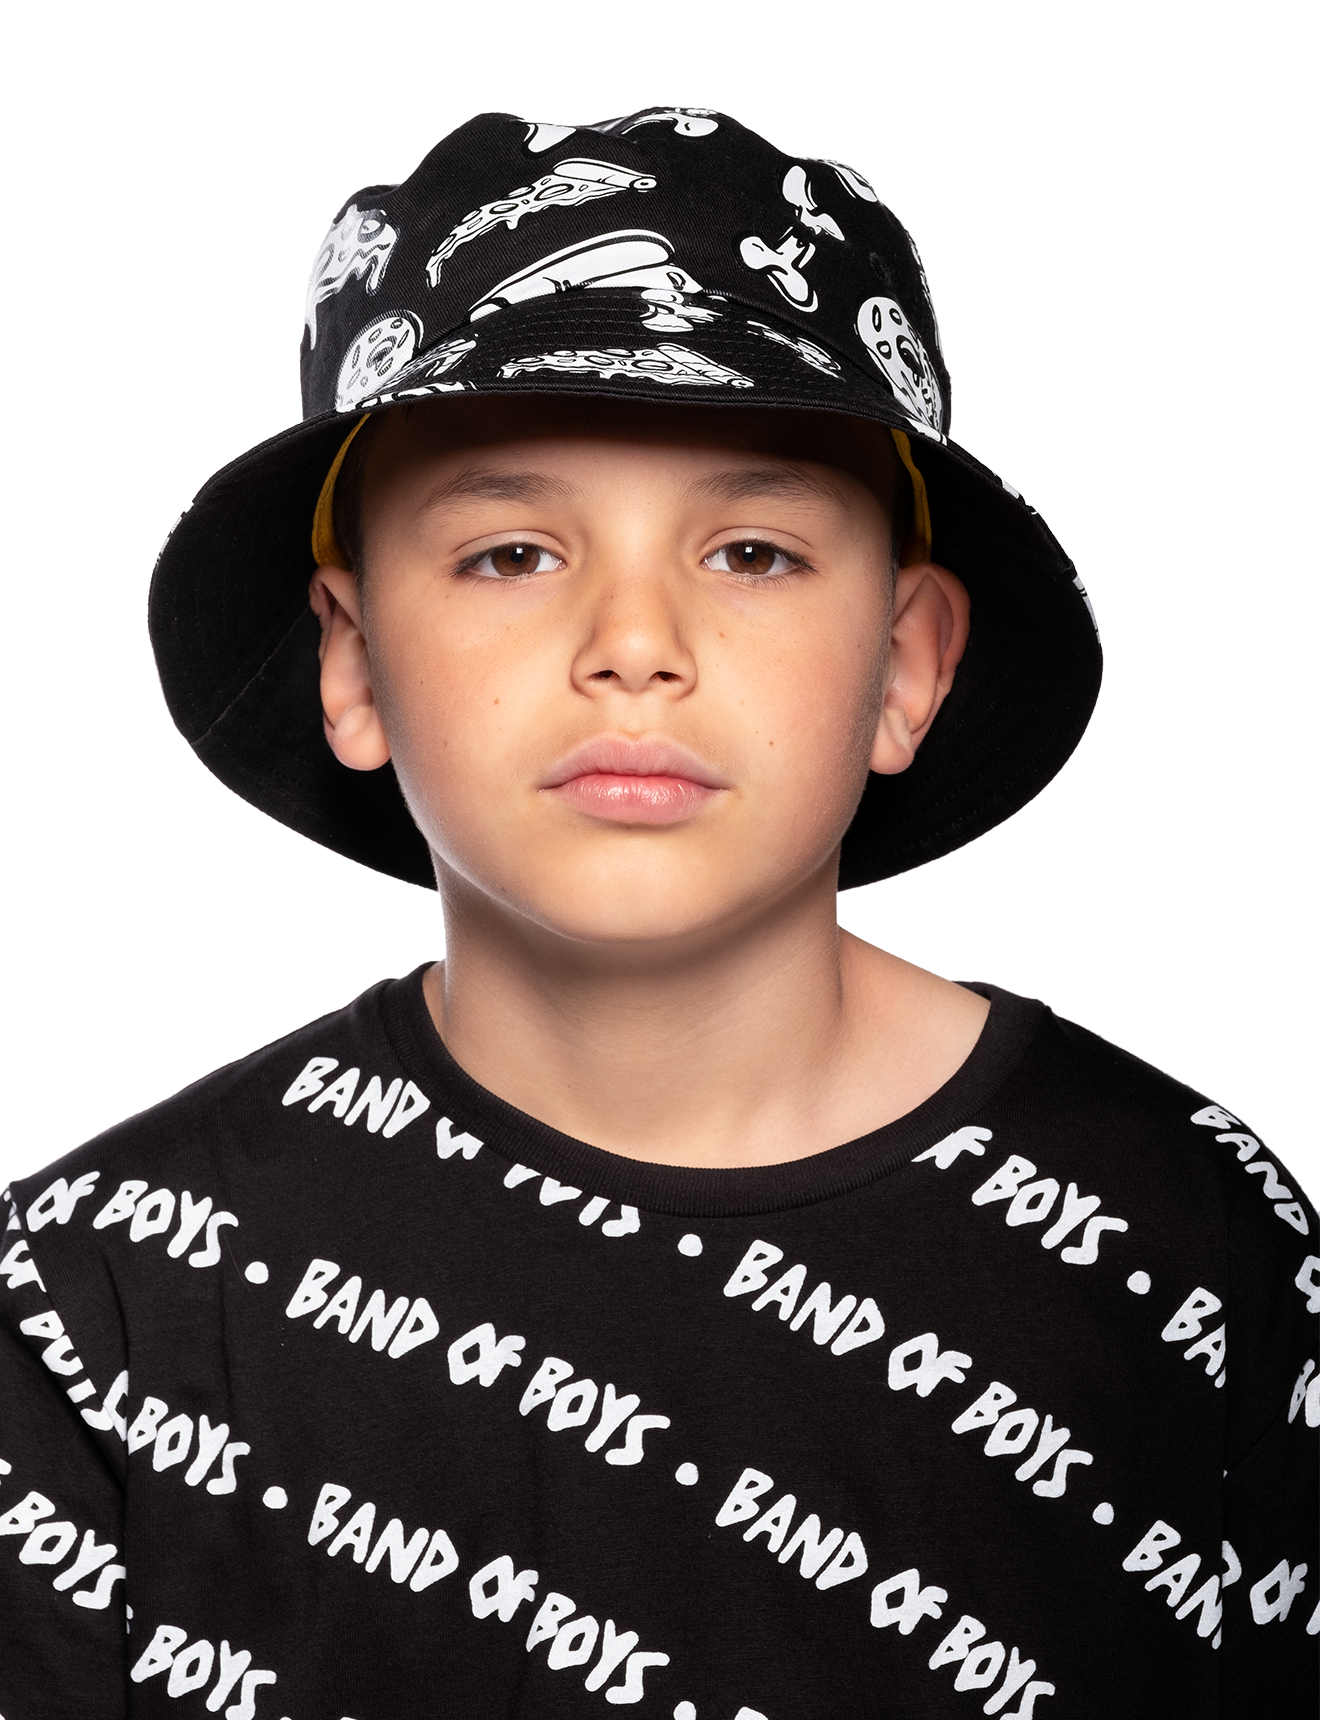 Band Of Boys Food Fight Bucket Hat Black Clothing Hats Summer Hats Kid Republic S20 21 Band Of Boys D1